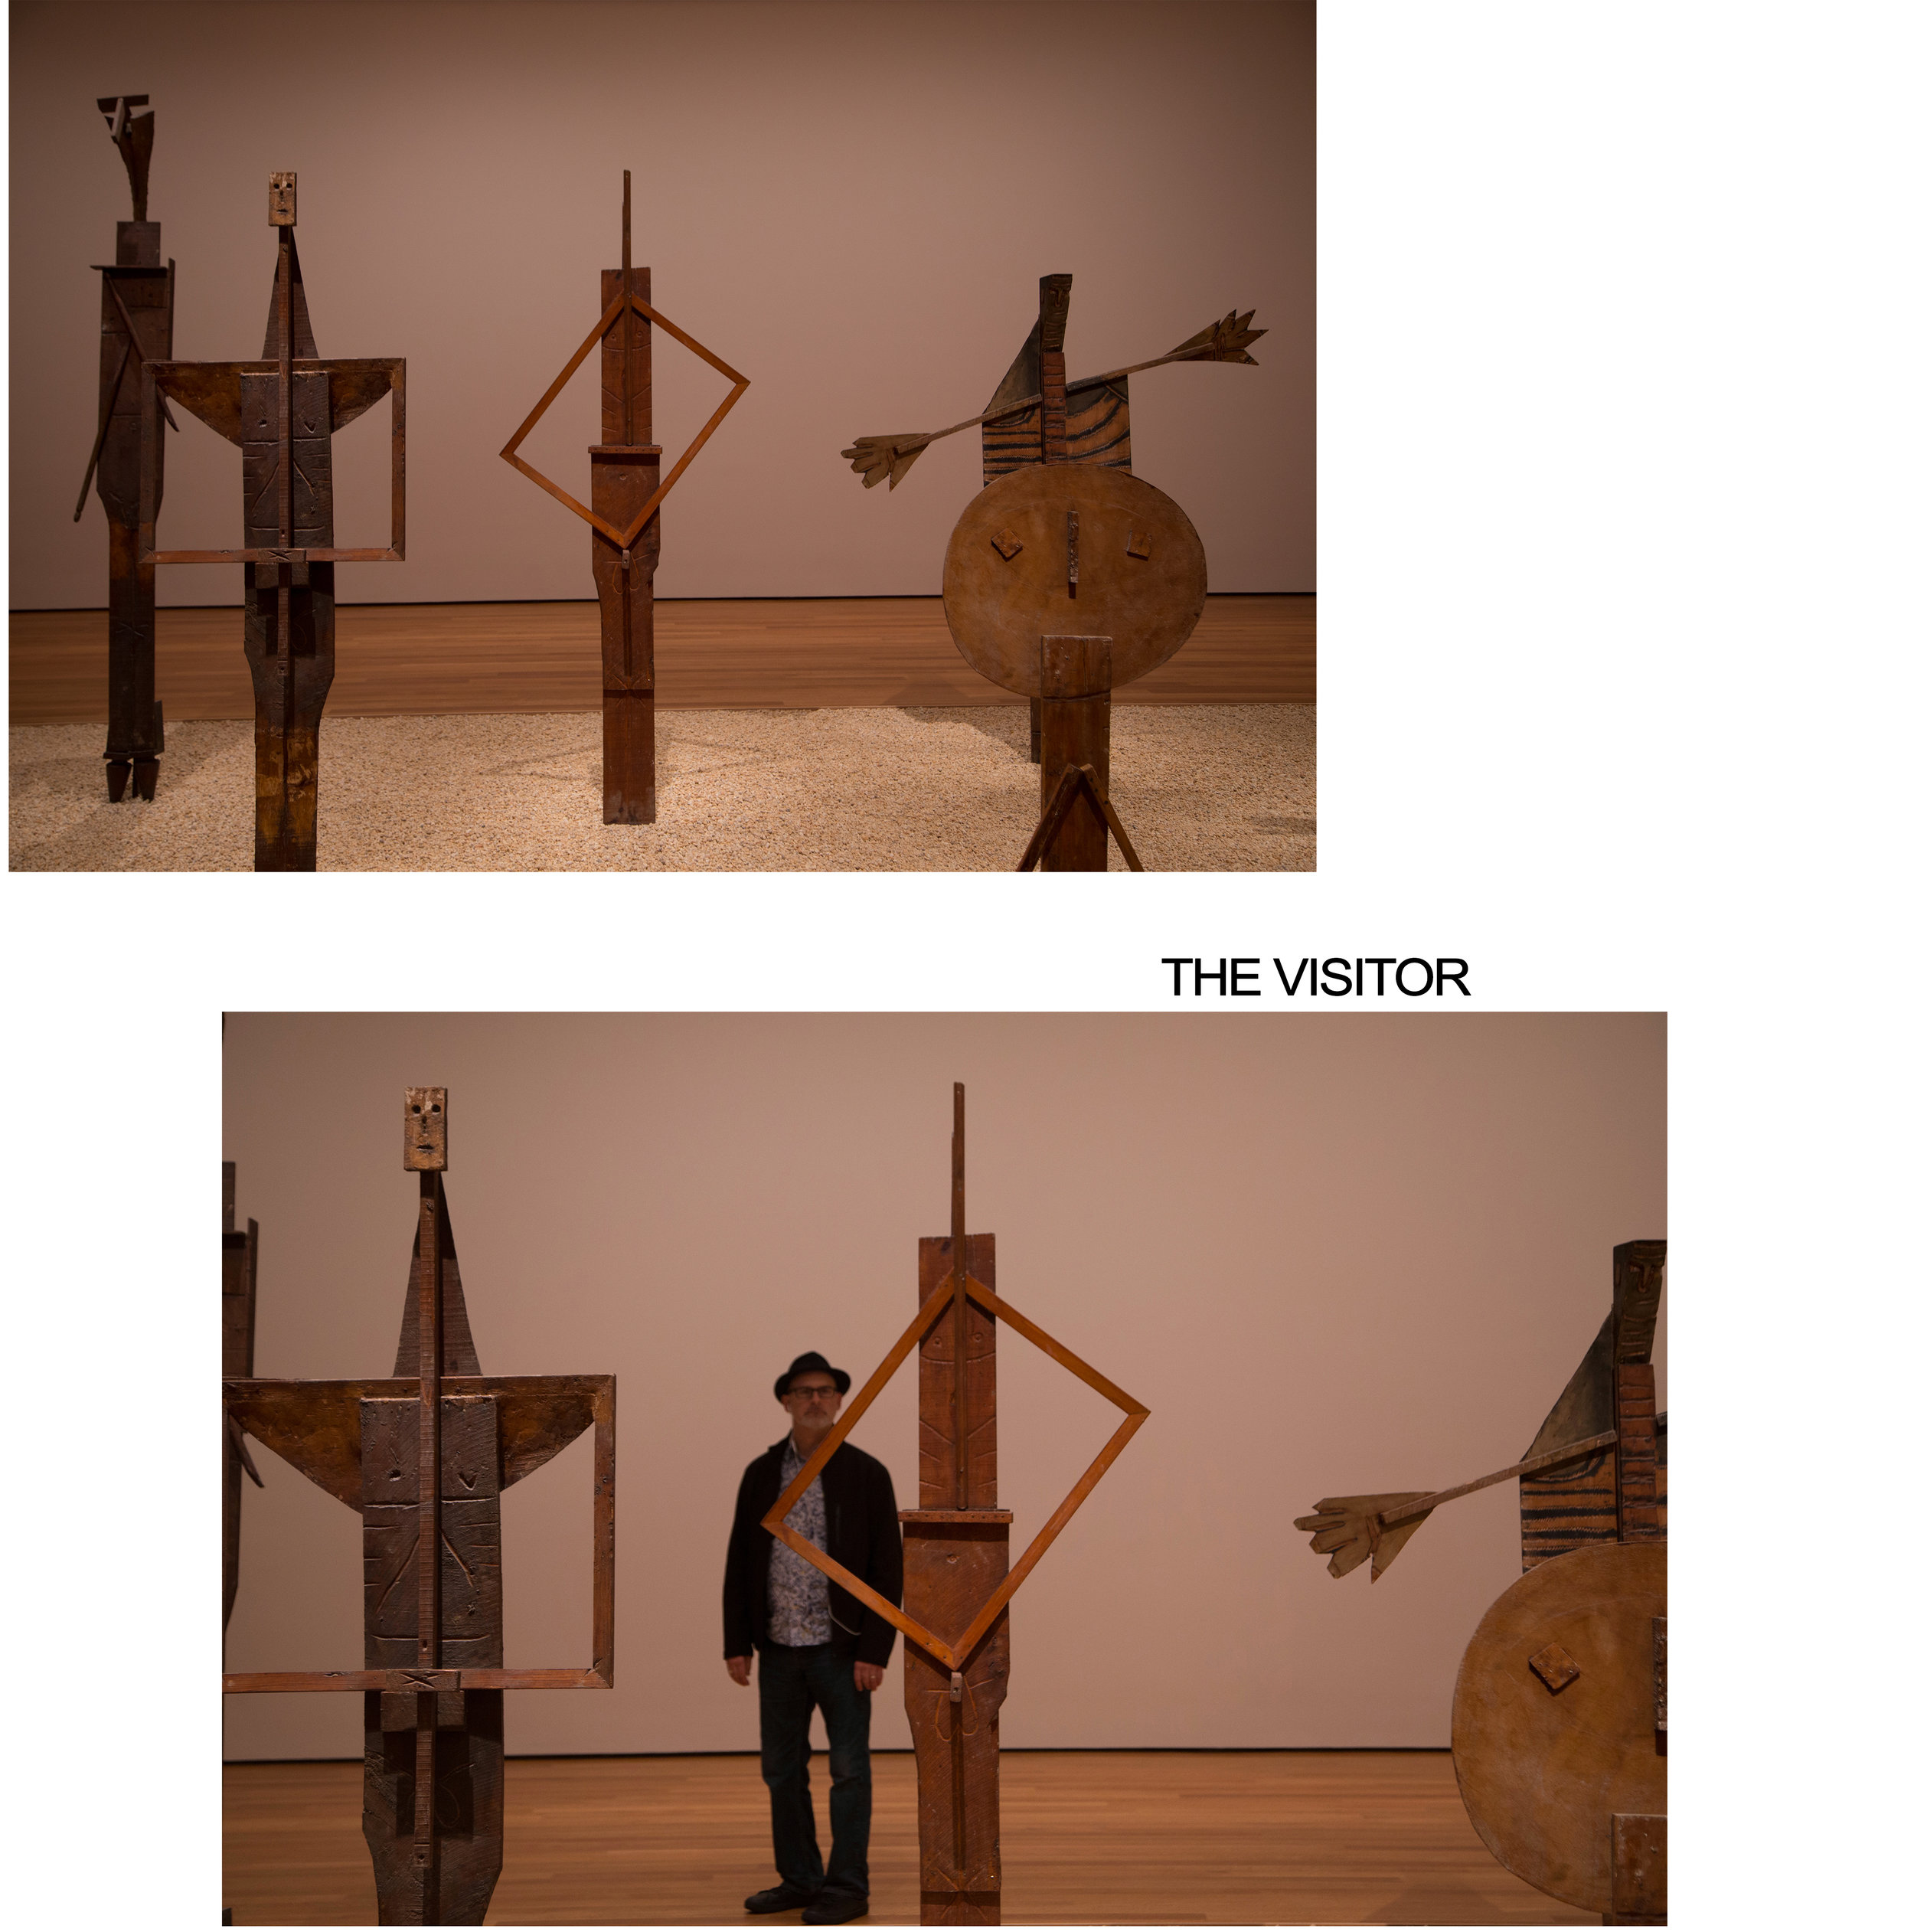 thevisitor_moma.jpg